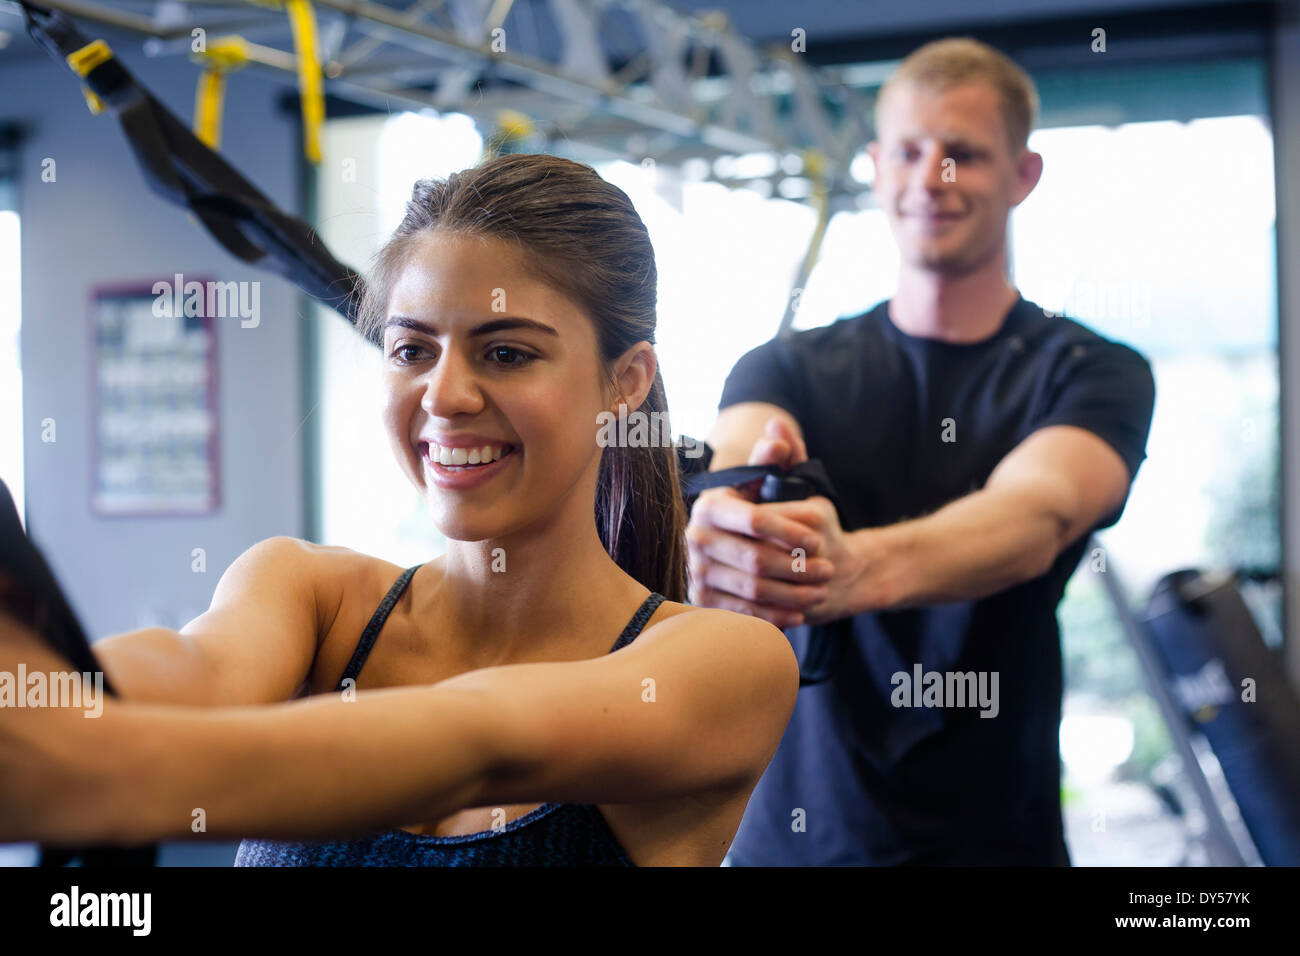 Couple working out in gym - Stock Image